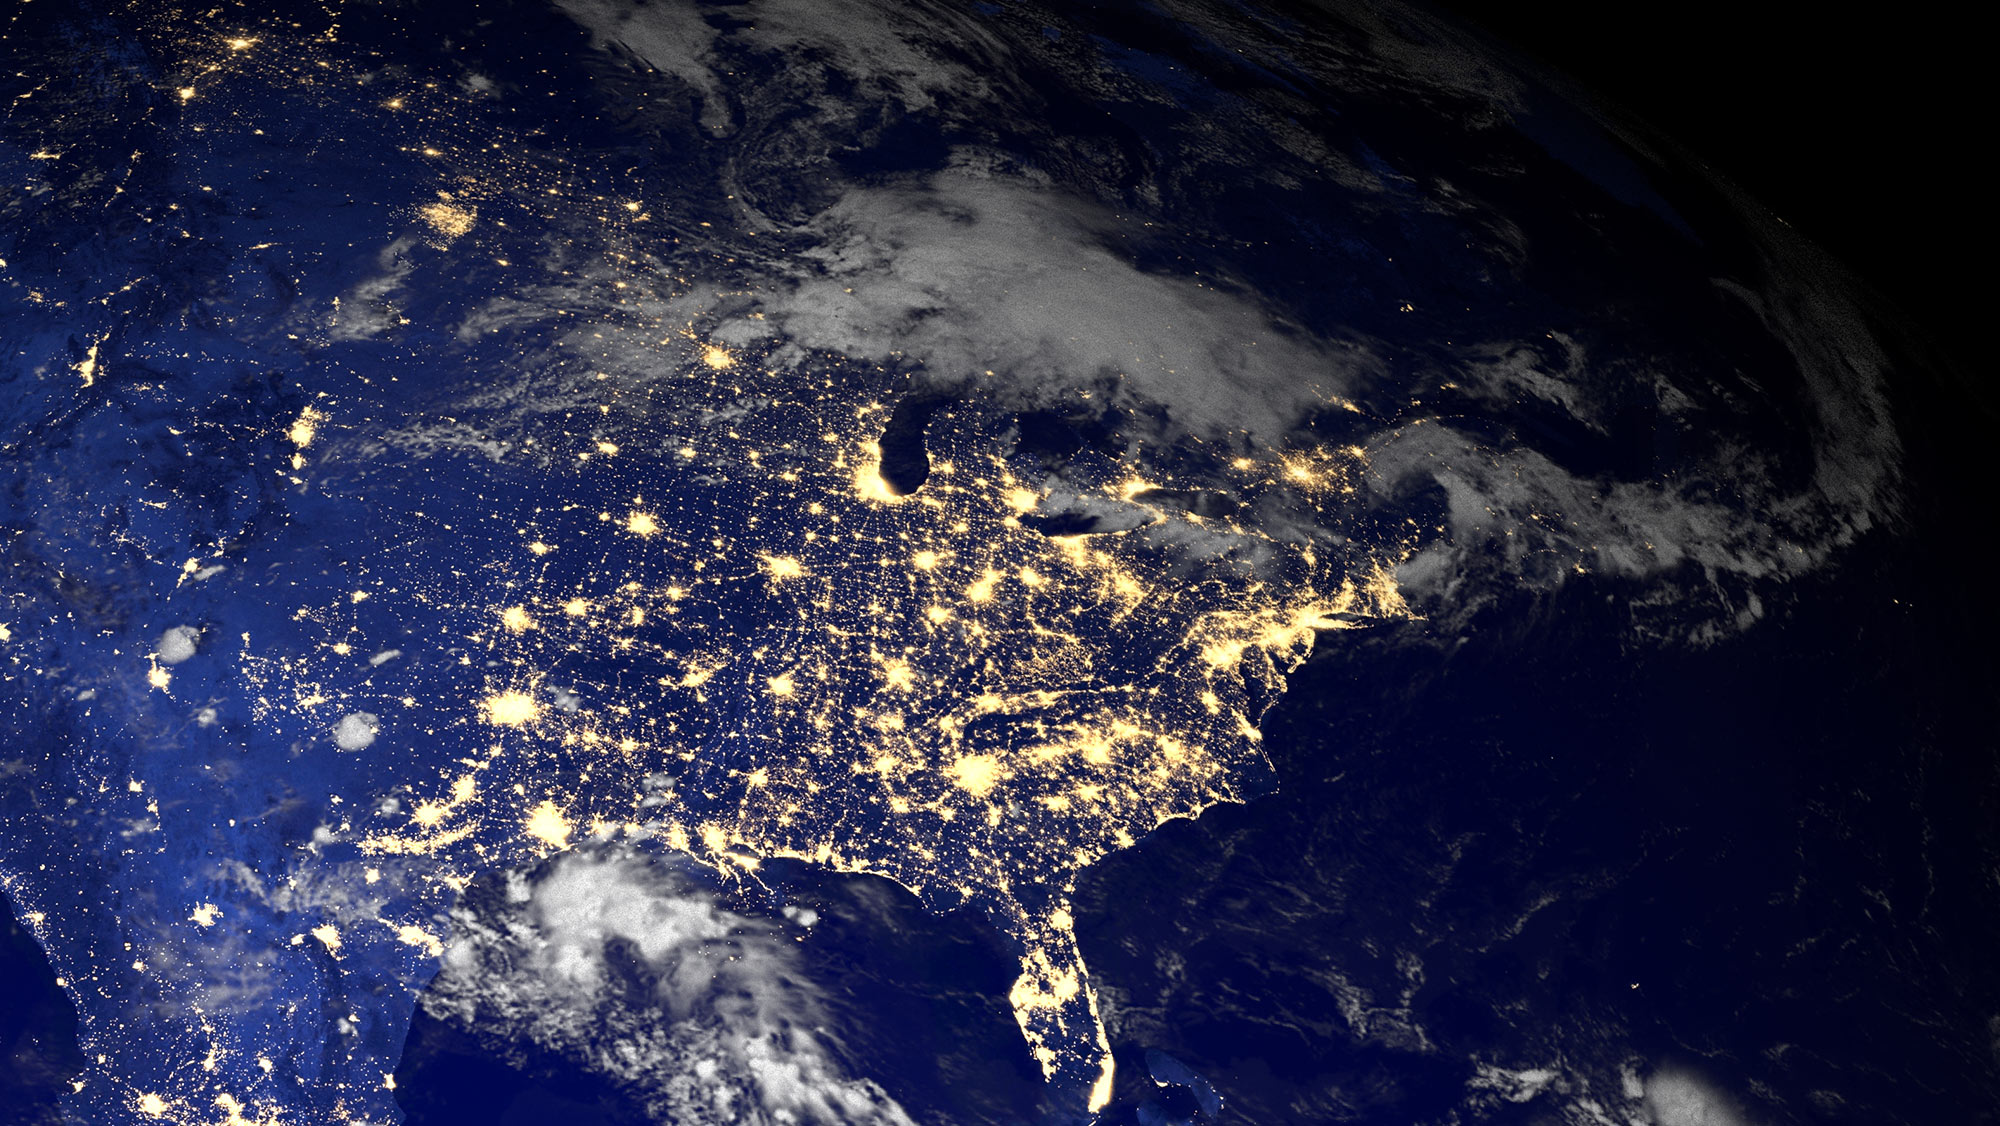 Outer space shot of America with city lights.